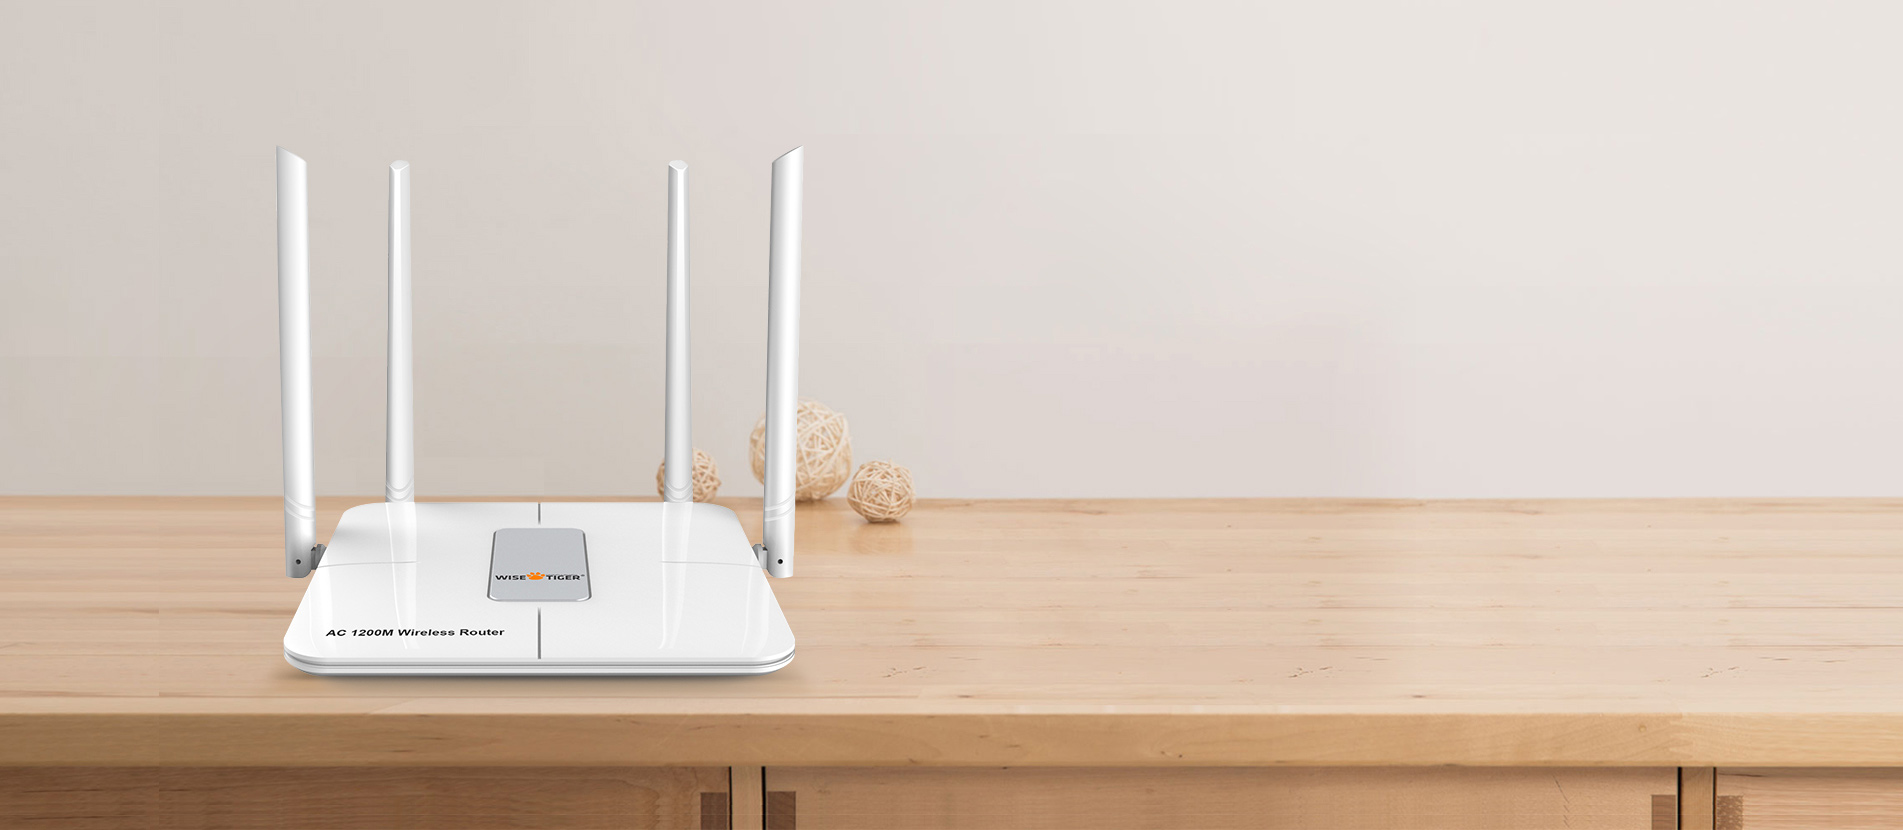 AC1200 WiFi Router